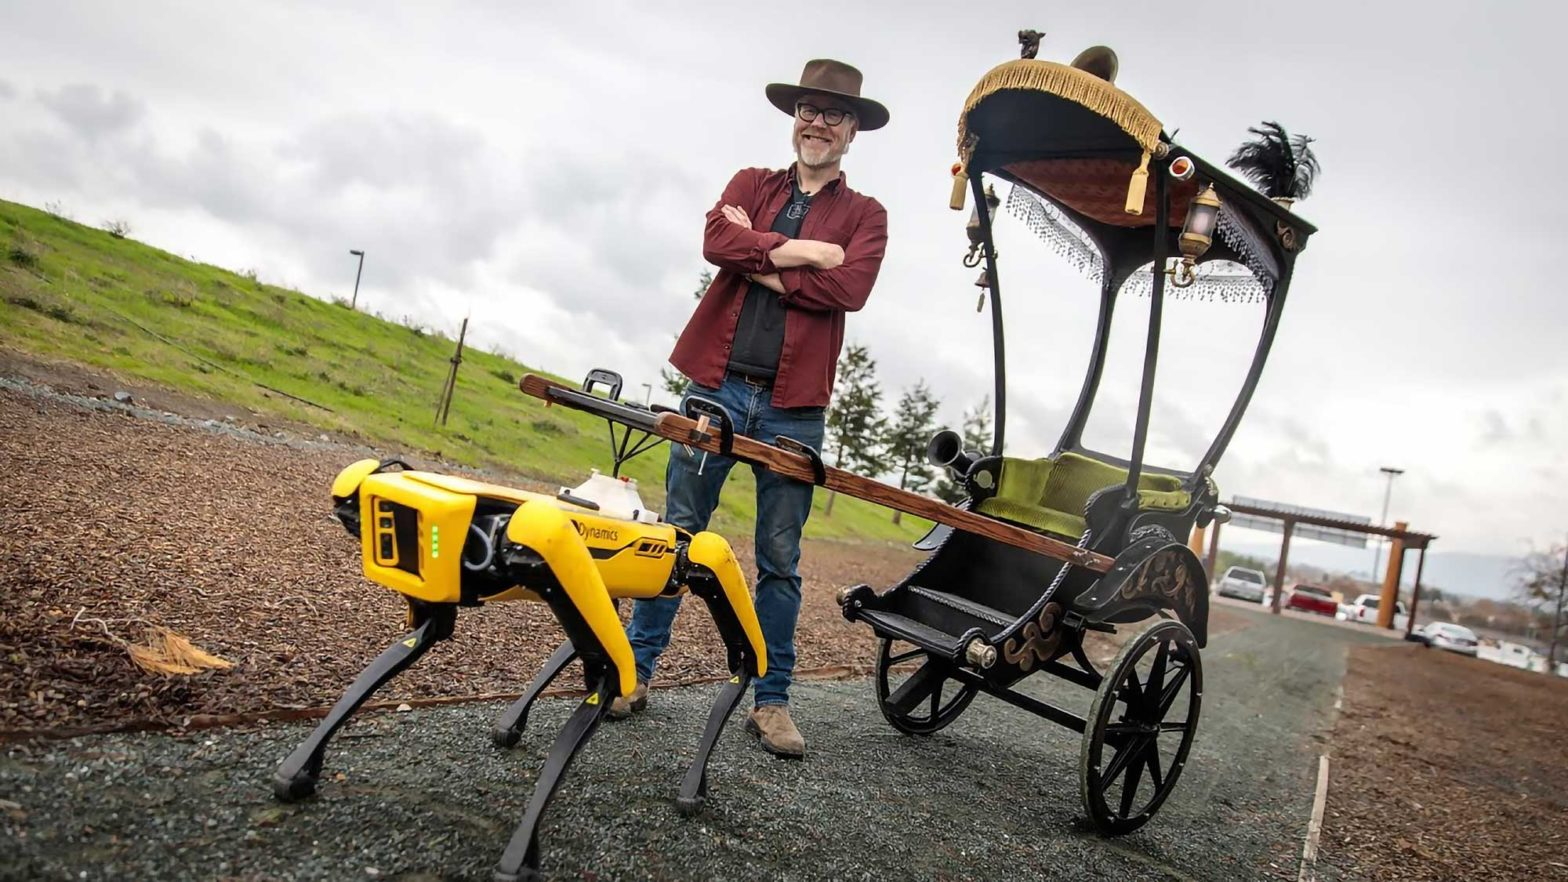 Adam Savage's Spot Robot Rickshaw Carriage